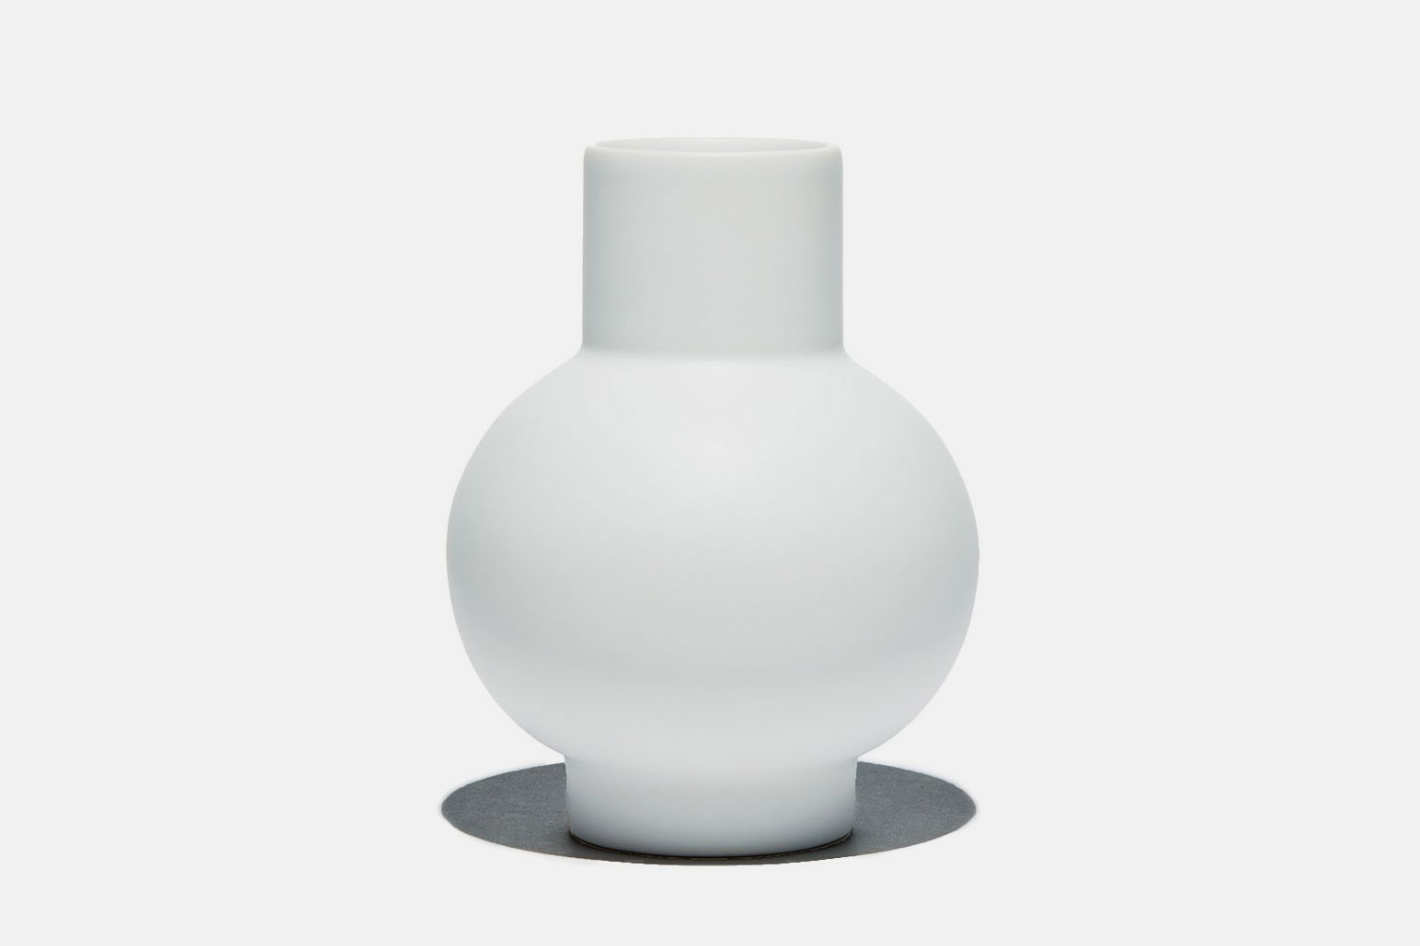 Raawii Strom Small Vase